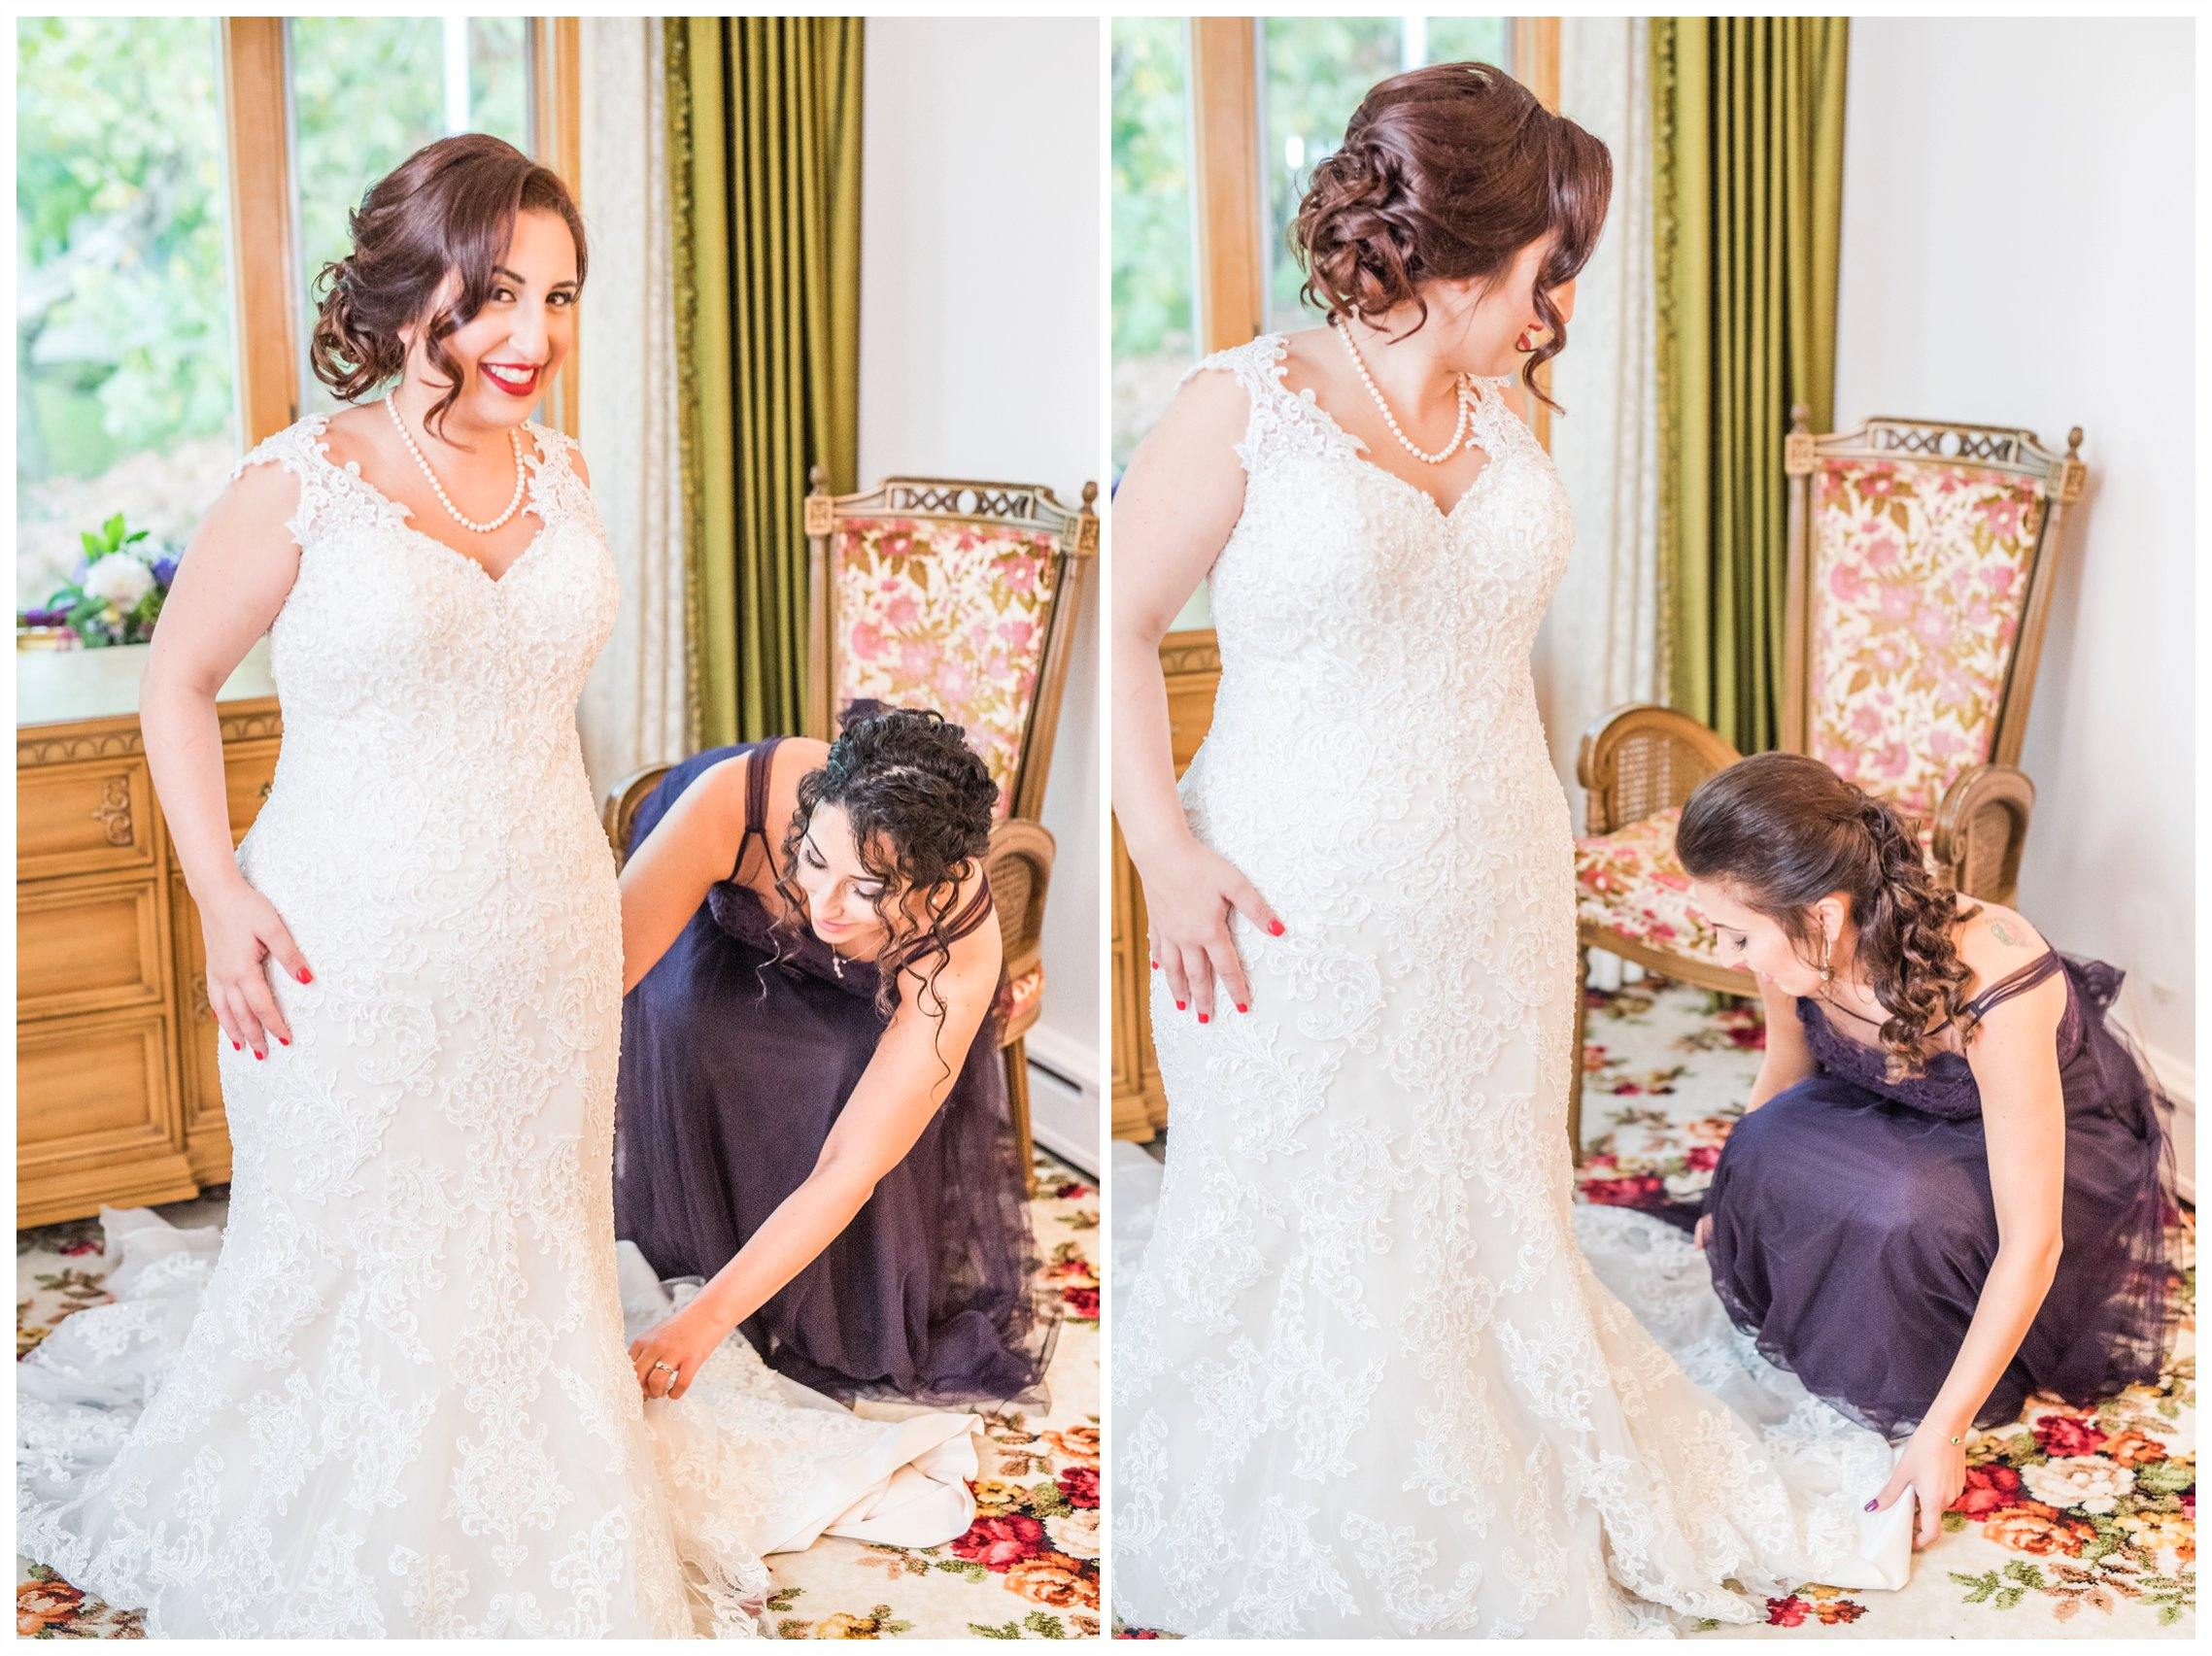 bride and sister enjoying getting ready for wedding day